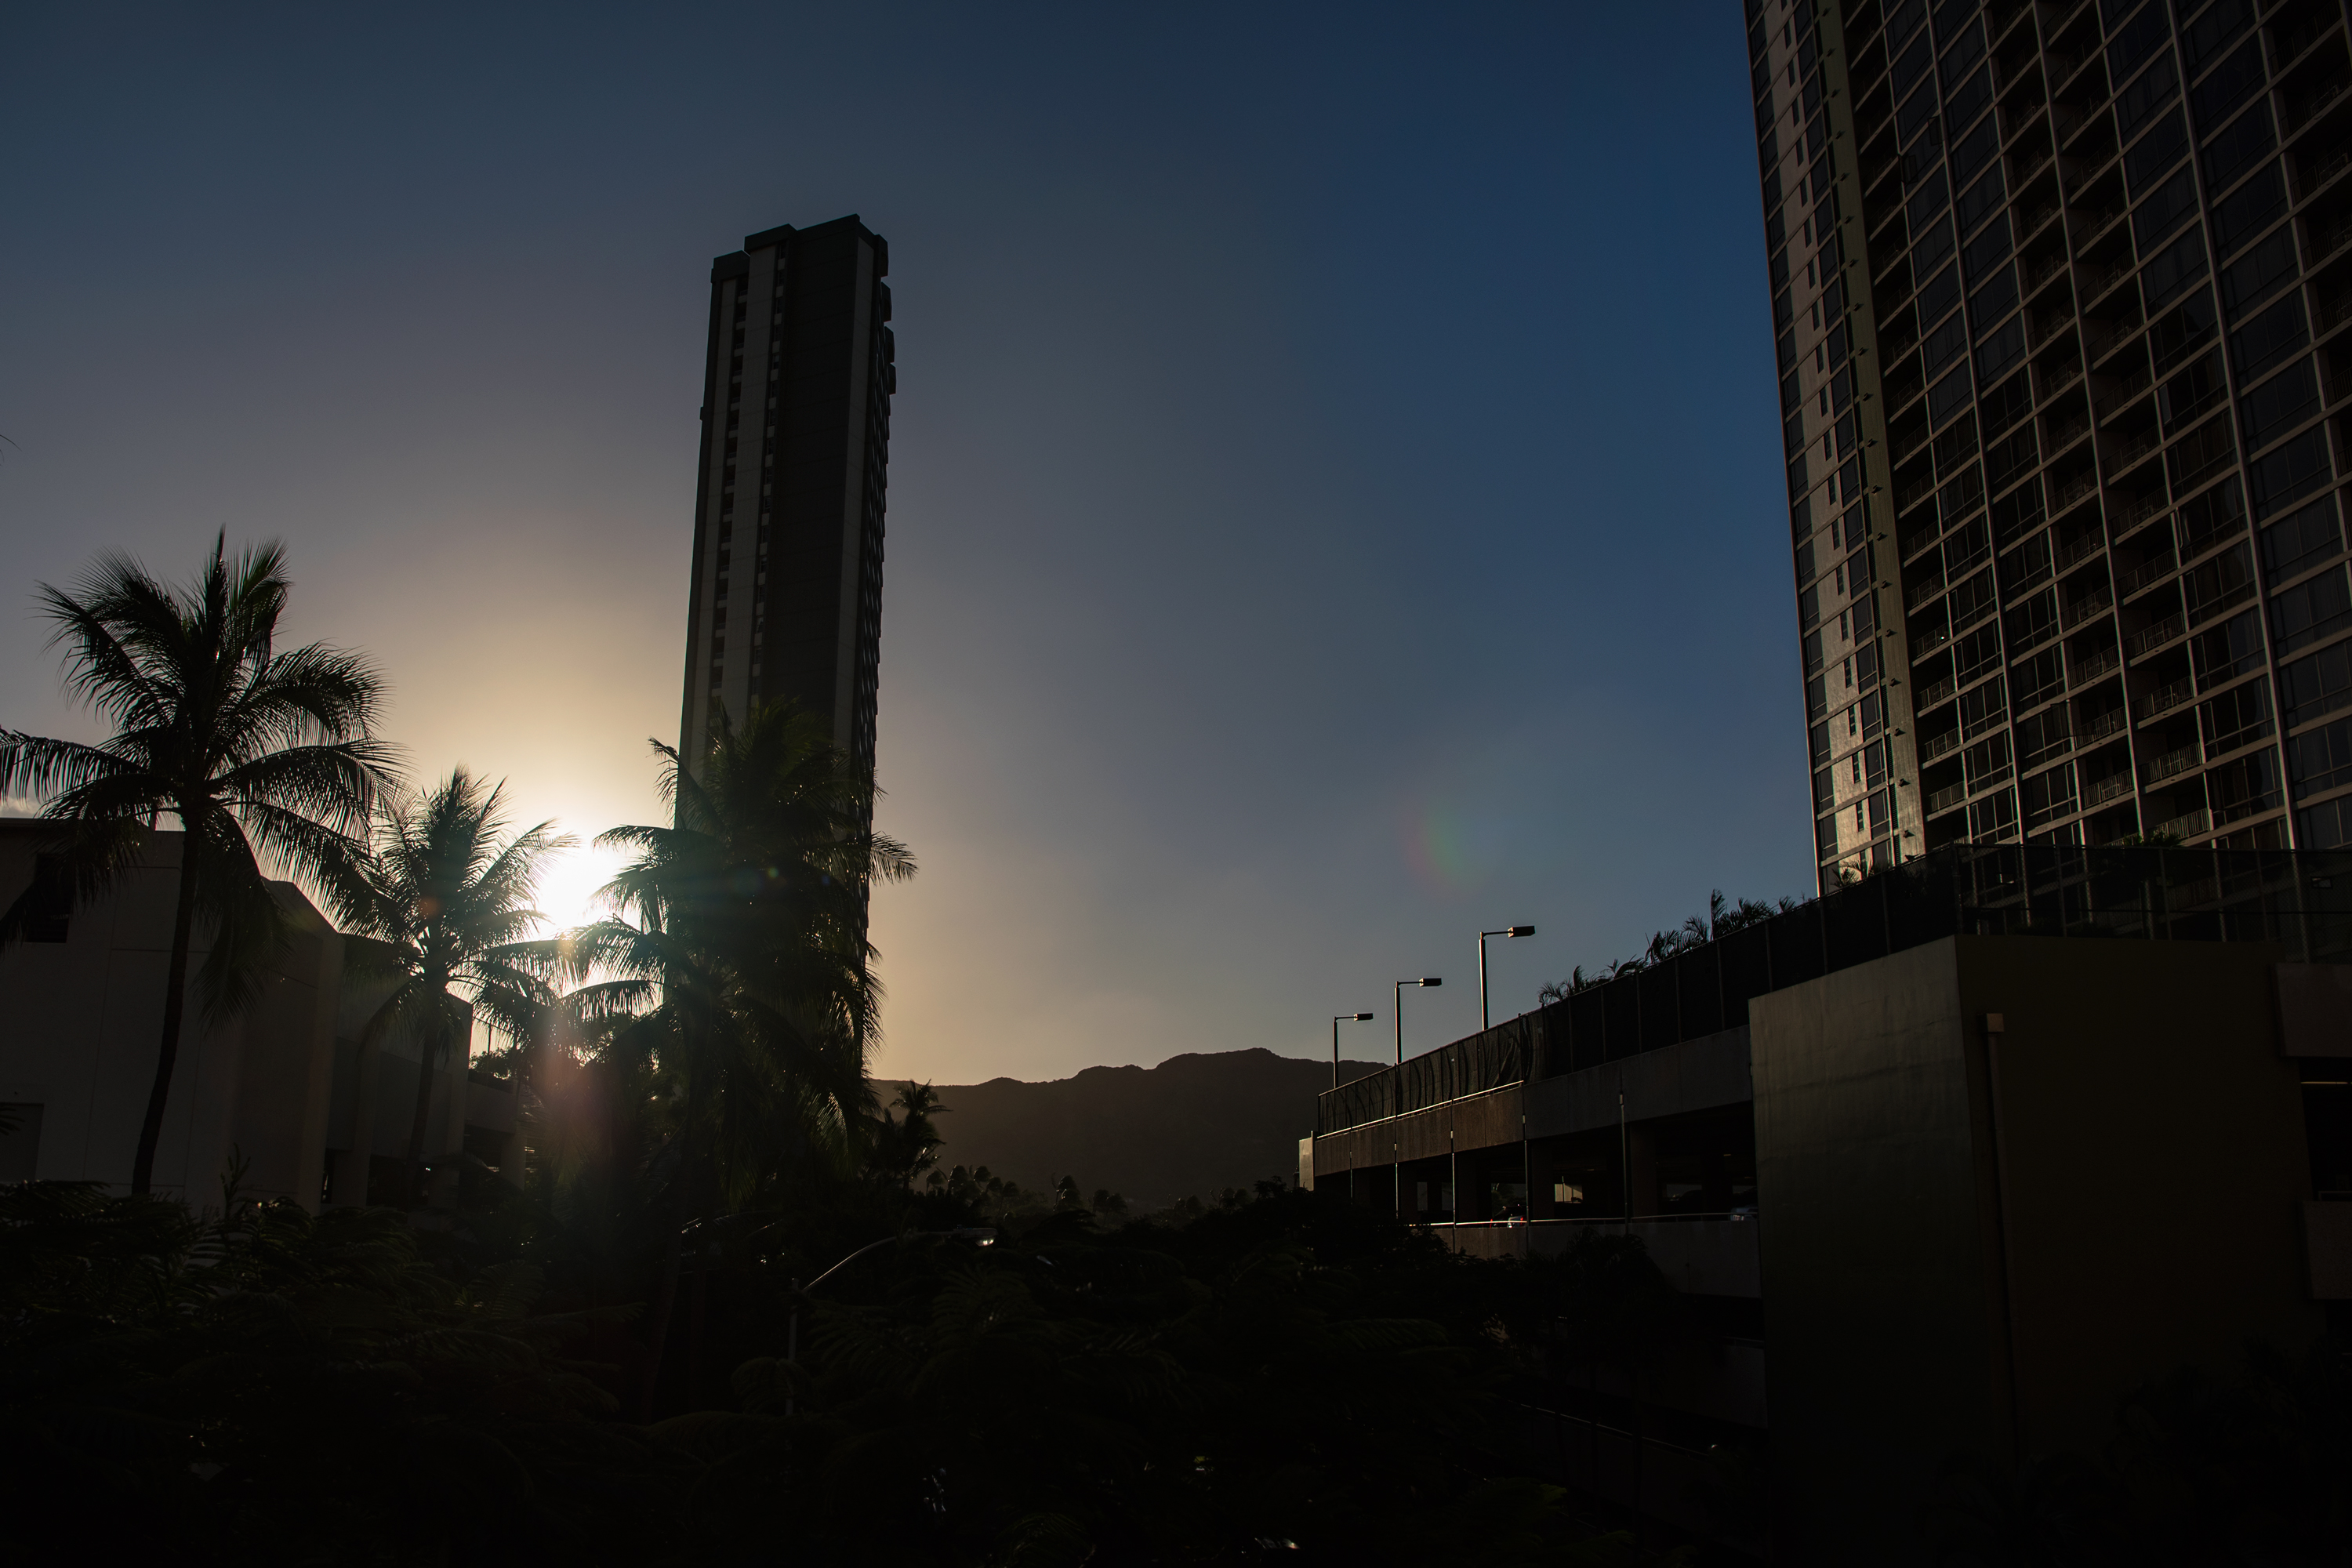 Sunrise at Waikiki